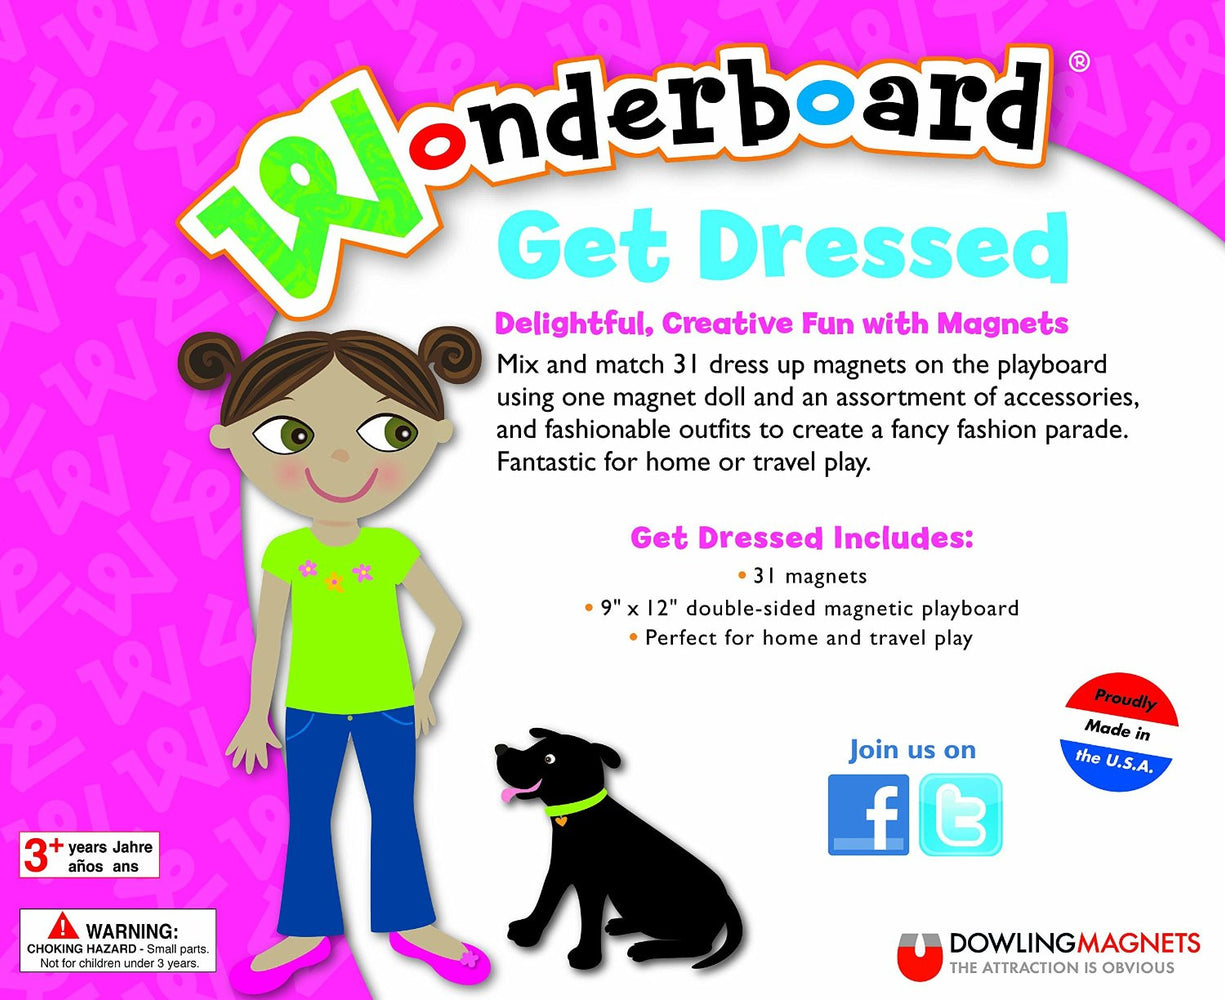 Wonderboard Magentic Play Set - Get Dressed